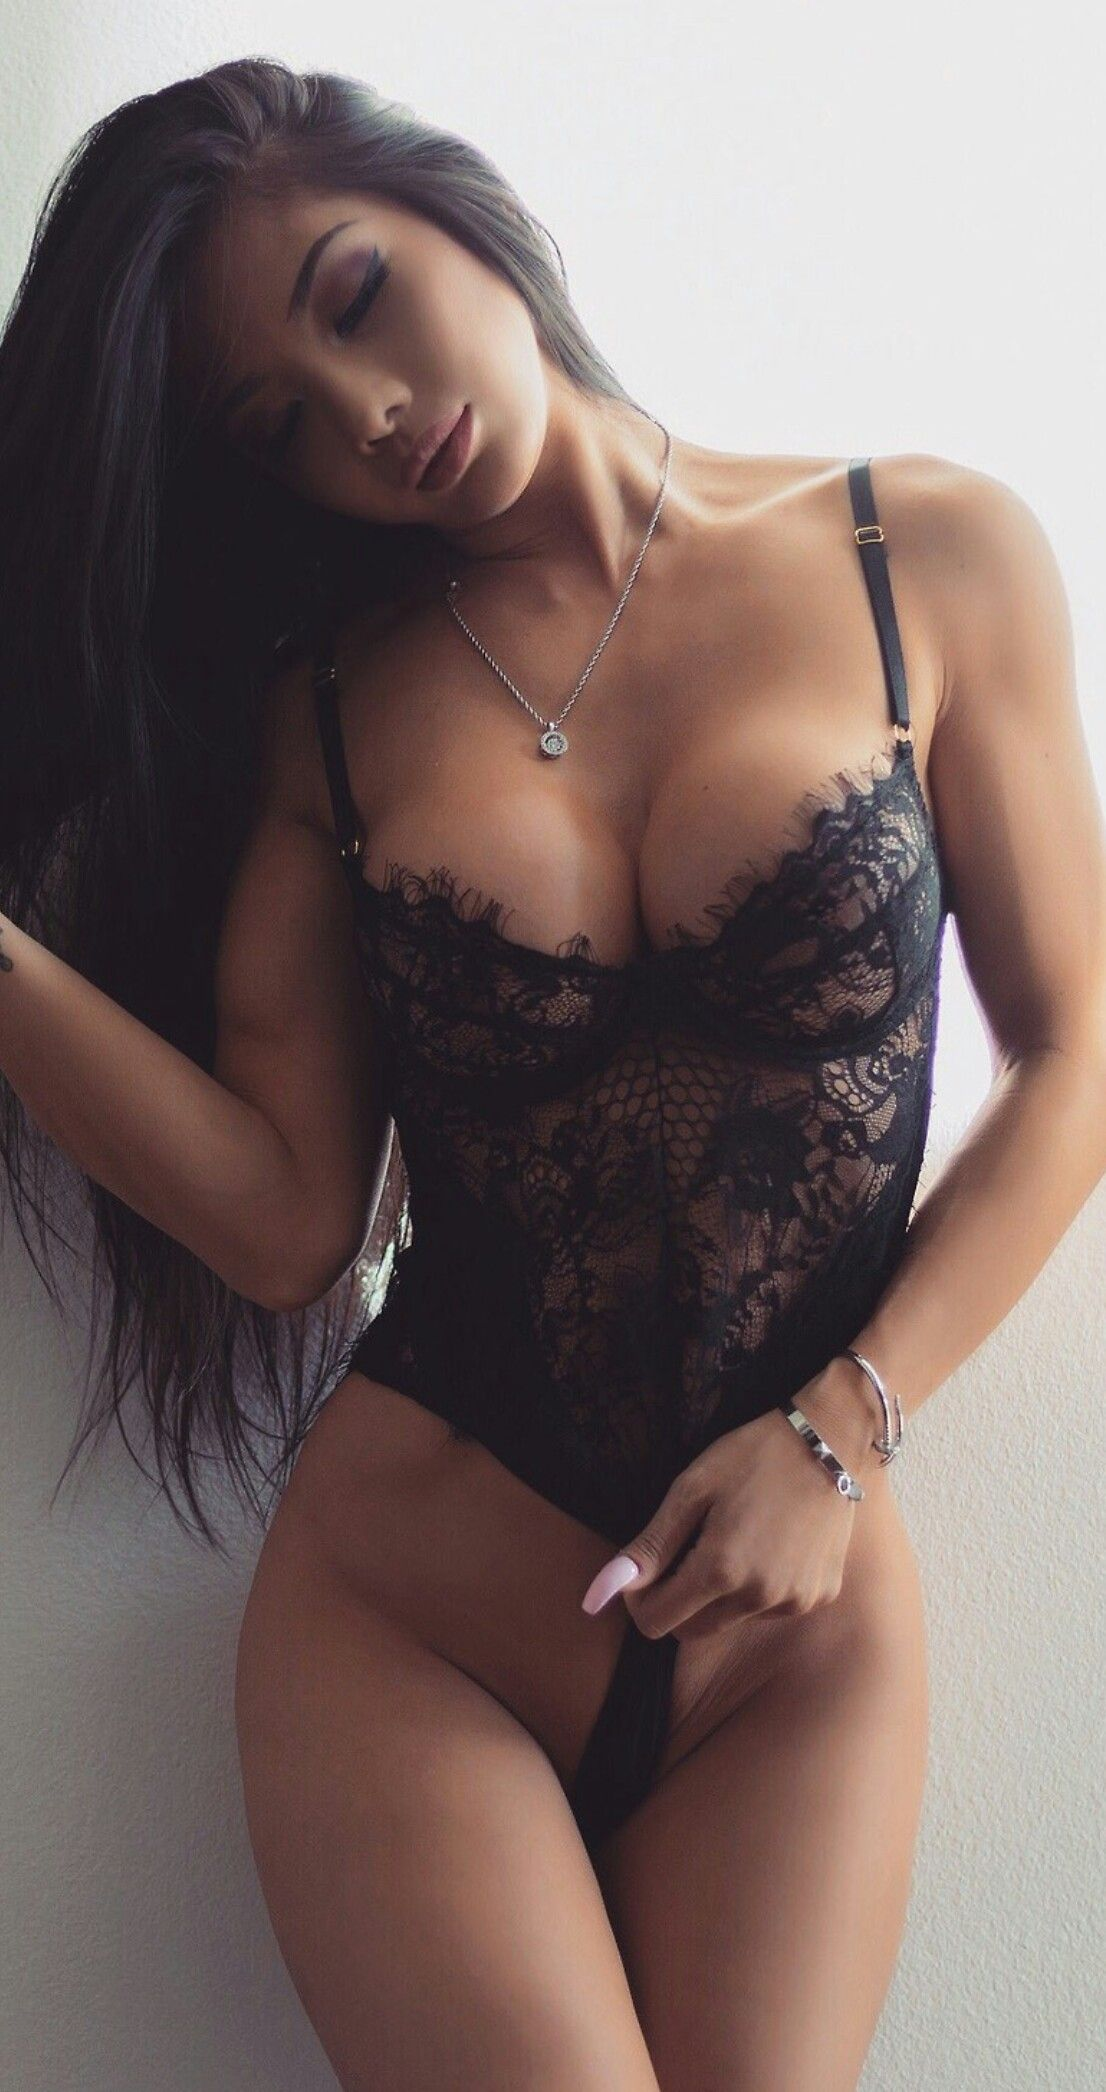 Pin by ktrekker on smokin pinterest lingerie girls and nice